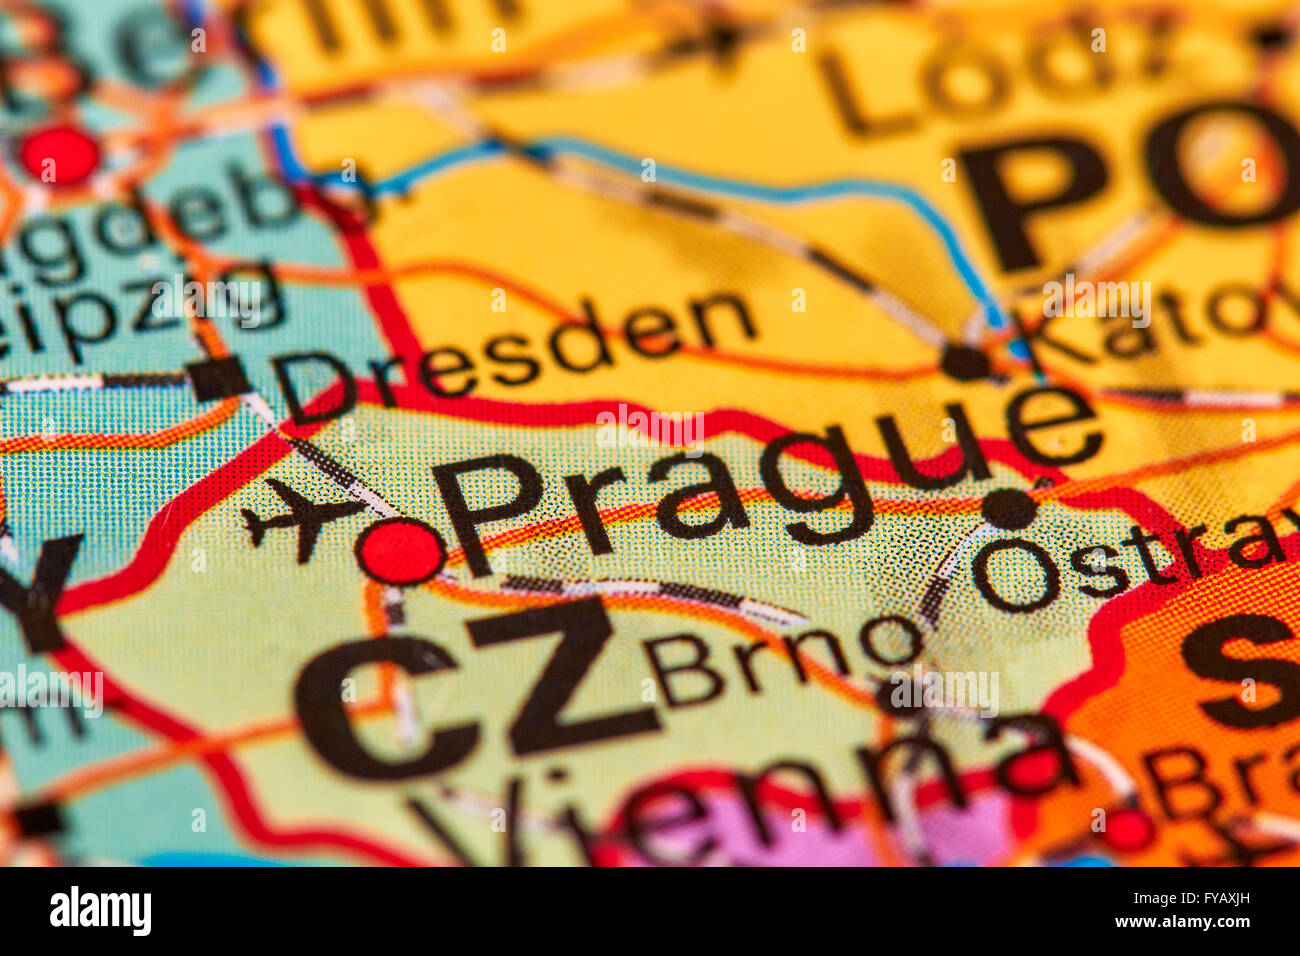 Prague Capital City of Czech Republic on the World Map Stock